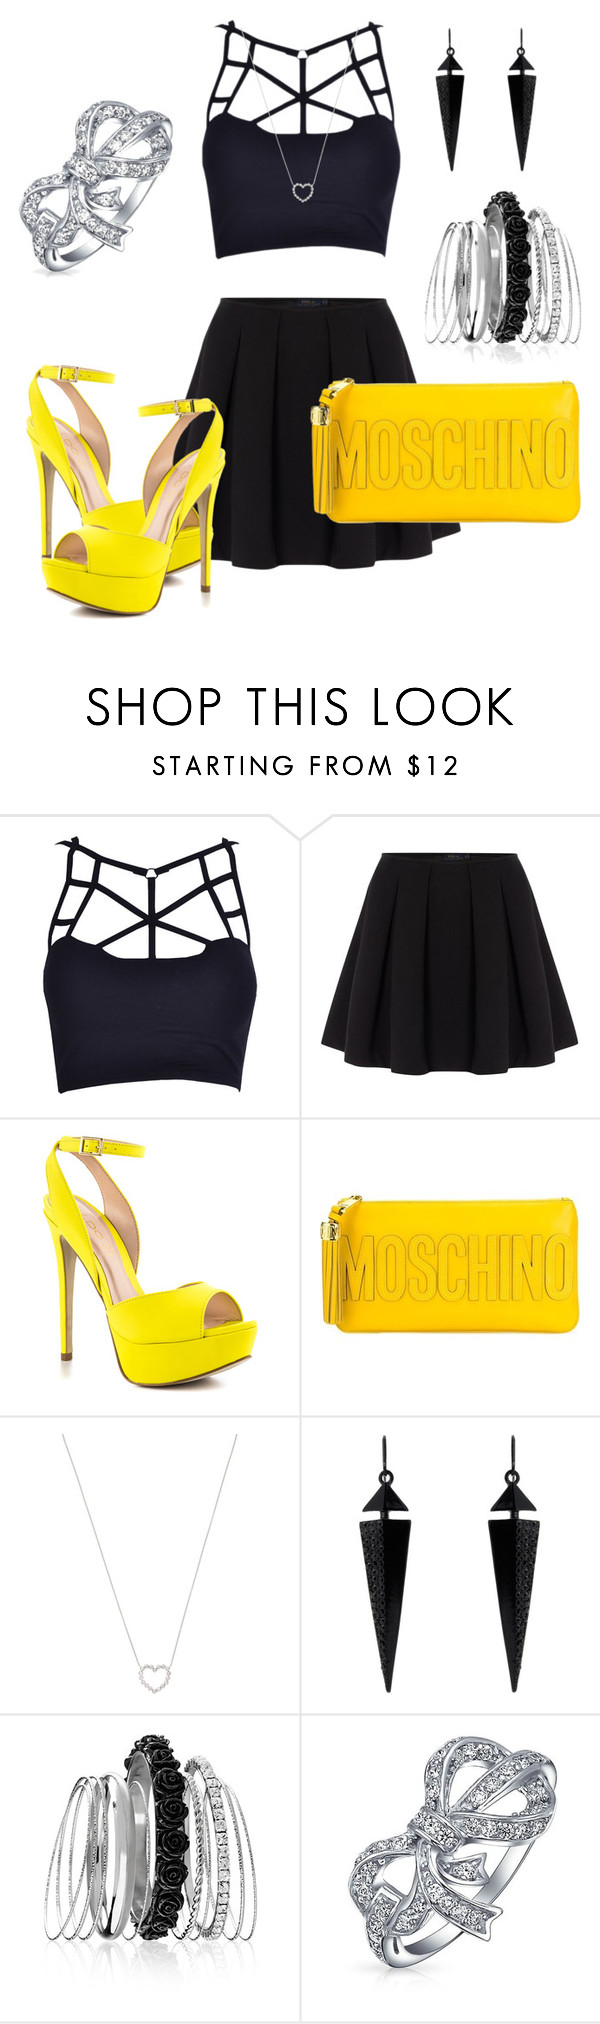 """""""Irresponsible sexy """" by innamilen ❤ liked on Polyvore featuring Polo Ralph Lauren, ALDO, Moschino, Tiffany & Co., Oasis, Avenue and Bling Jewelry"""